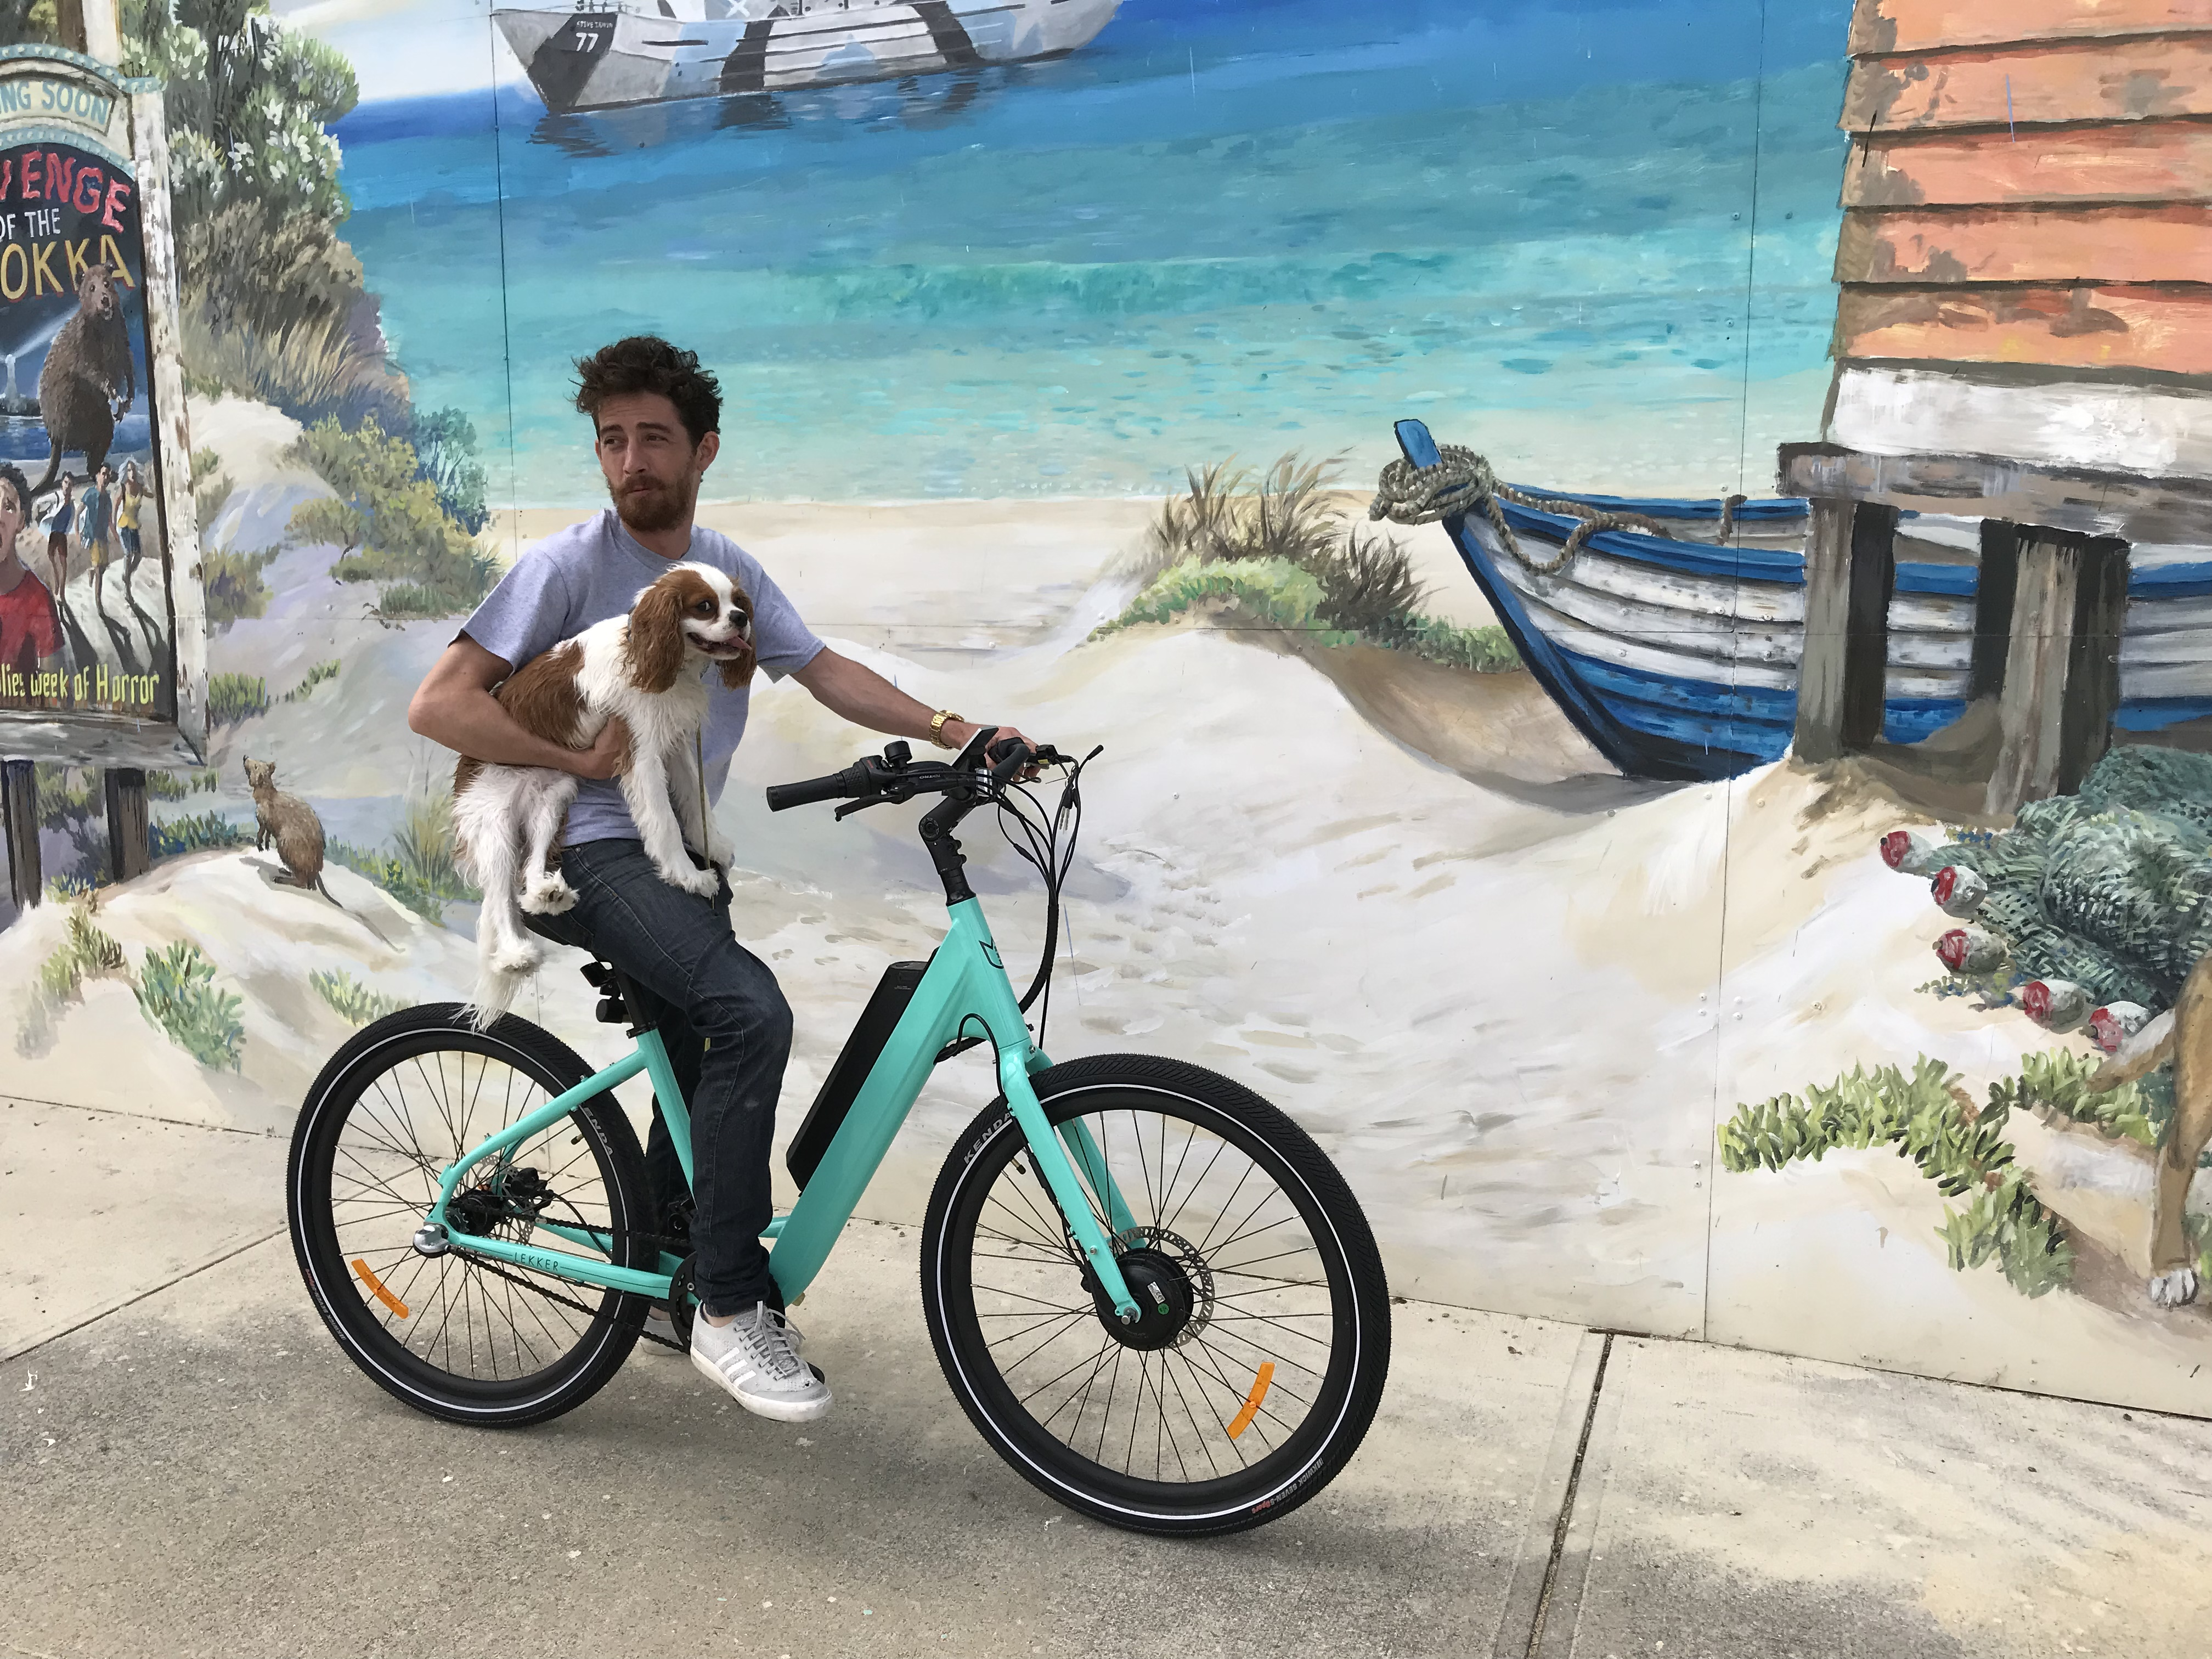 PERTH ELECTRIC BICYCLES - PERTH ELECTRIC BICYCLES is located